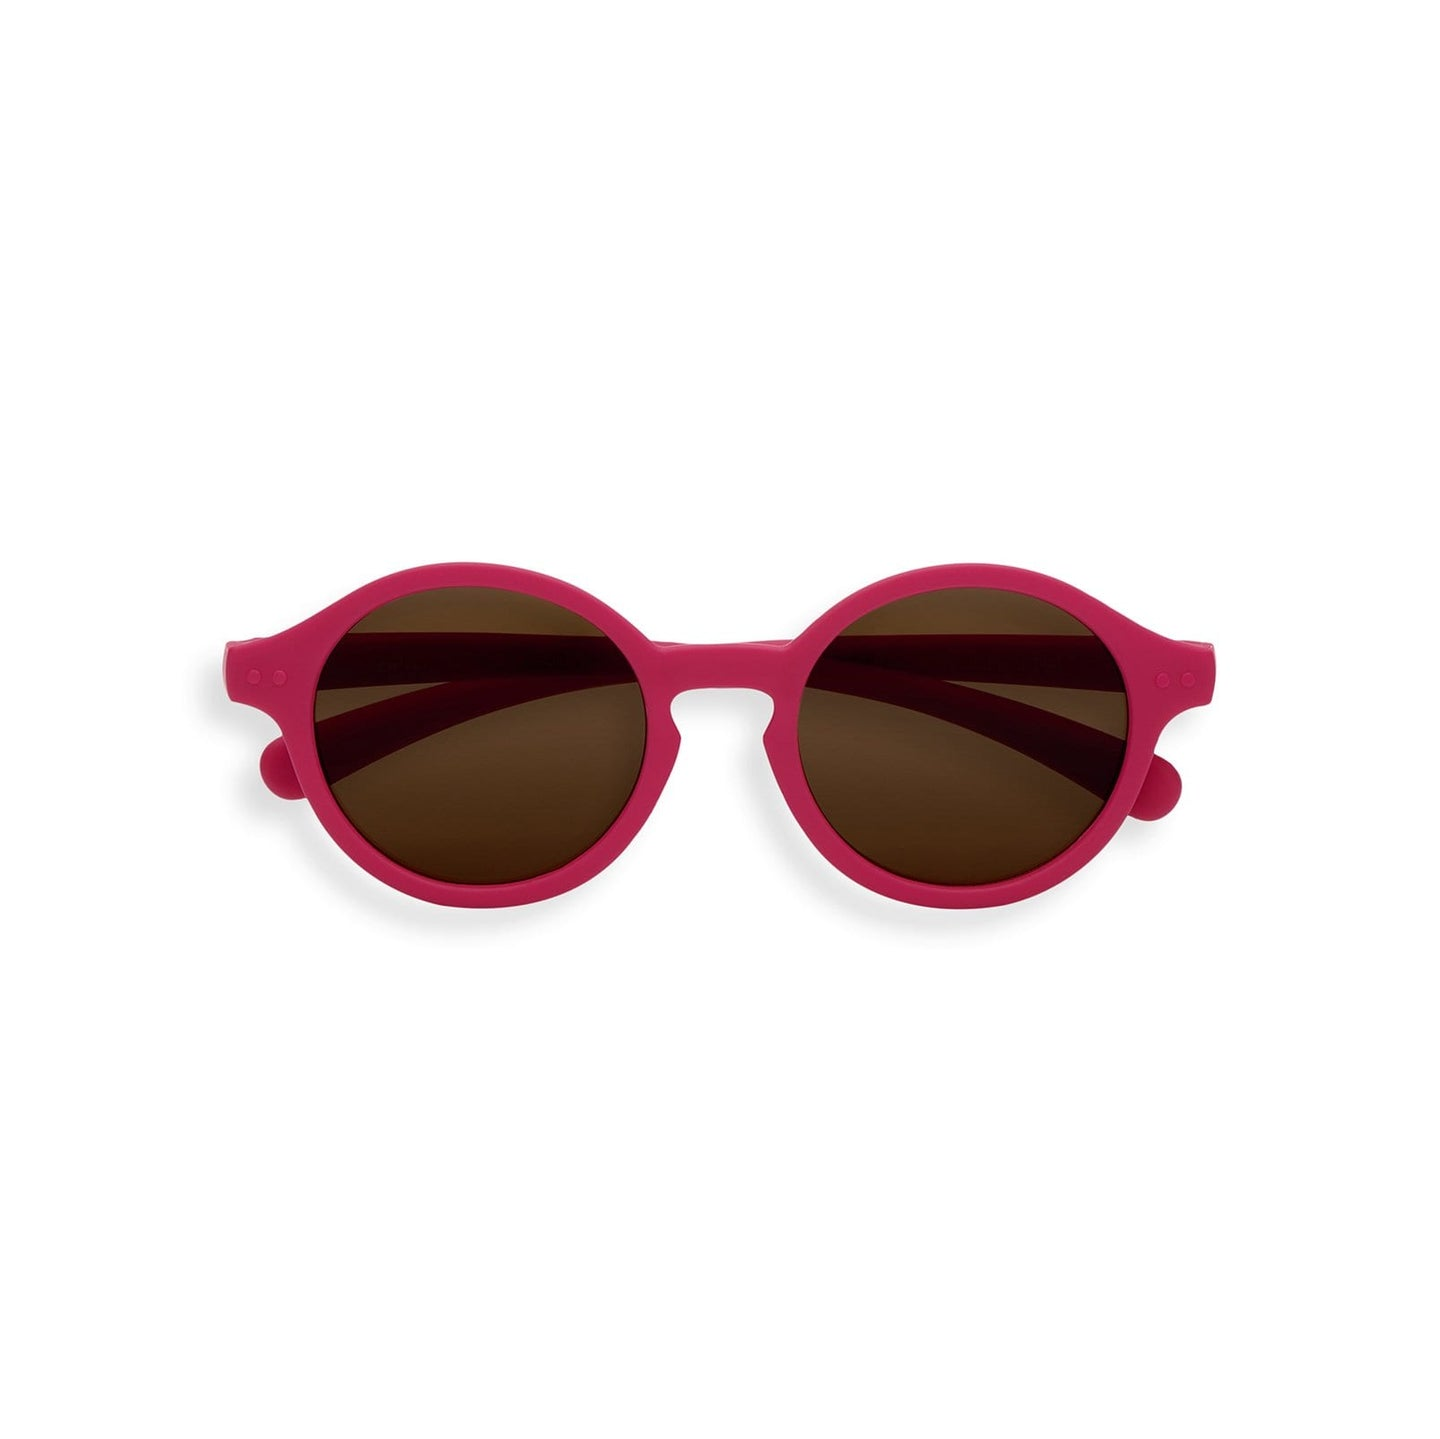 IZIPIZI Kids Plus Sunglasses - Polarized / Neighborhood Goods